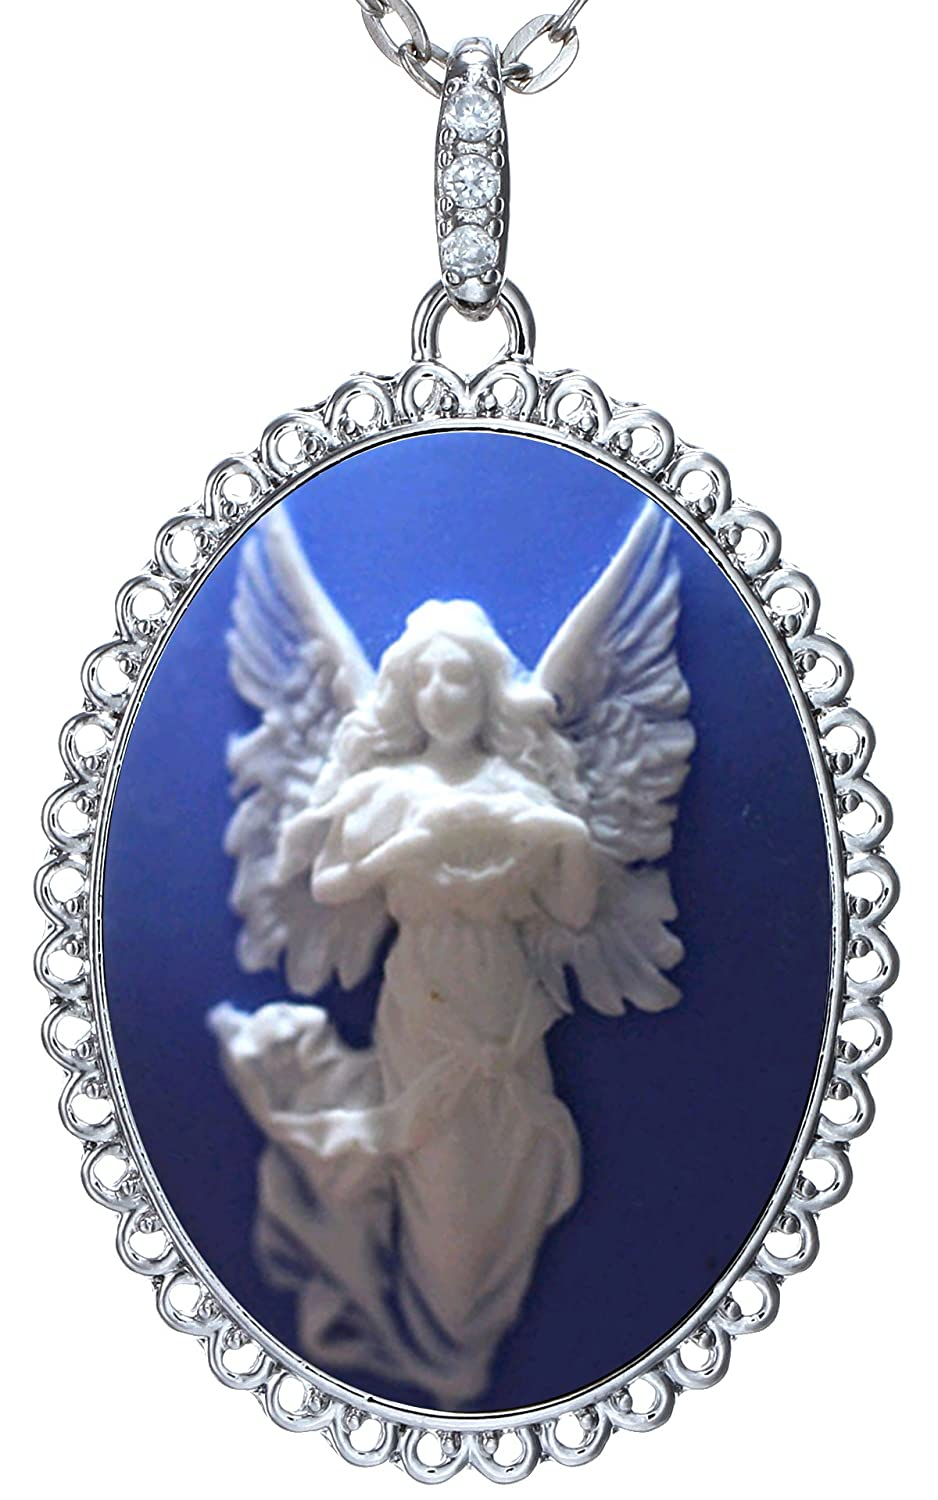 "Guardian Angel Necklace Blue Pendant Silver Custom Fashion Jewelry 18"" 24"" Chain Velvet Pouch for Gift"